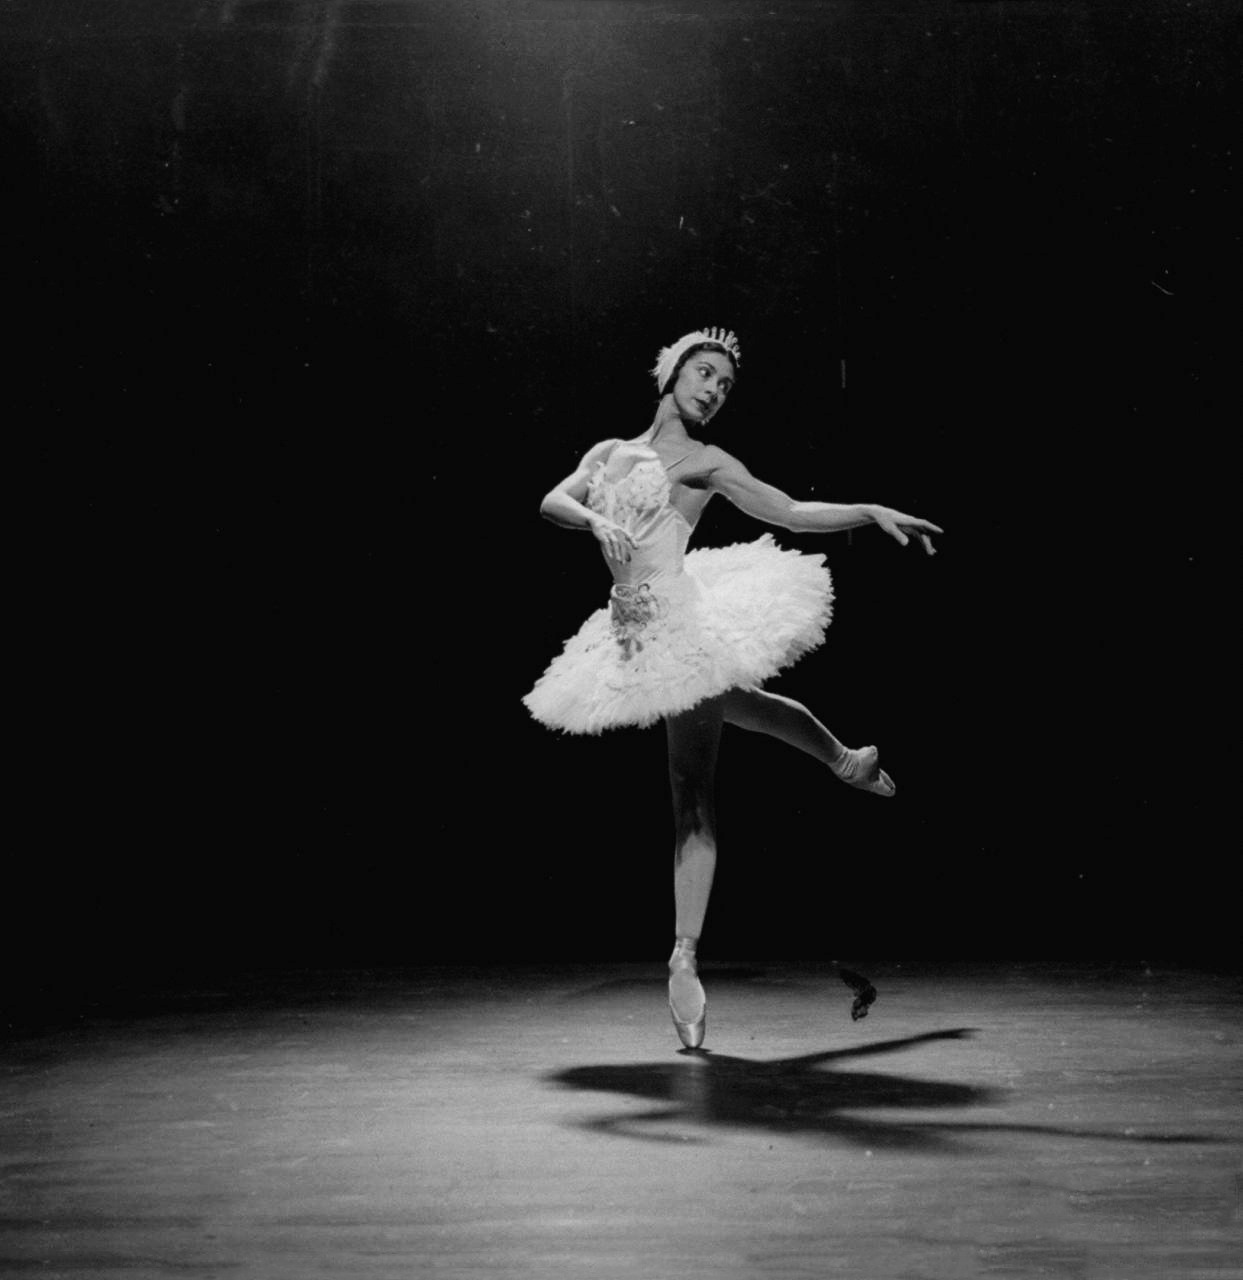 whodesignedit:  Ballerina Margot Fonteyn in White Costume Balanced on One Toe While Dancing Alone on Stage by Gjon Mili A beautiful poster print of ballerina Margot Fonteyn by Gjon Mili! She is widely considered the greatest classical ballet dancers of all time. Get this beautiful poster at AllPosters.